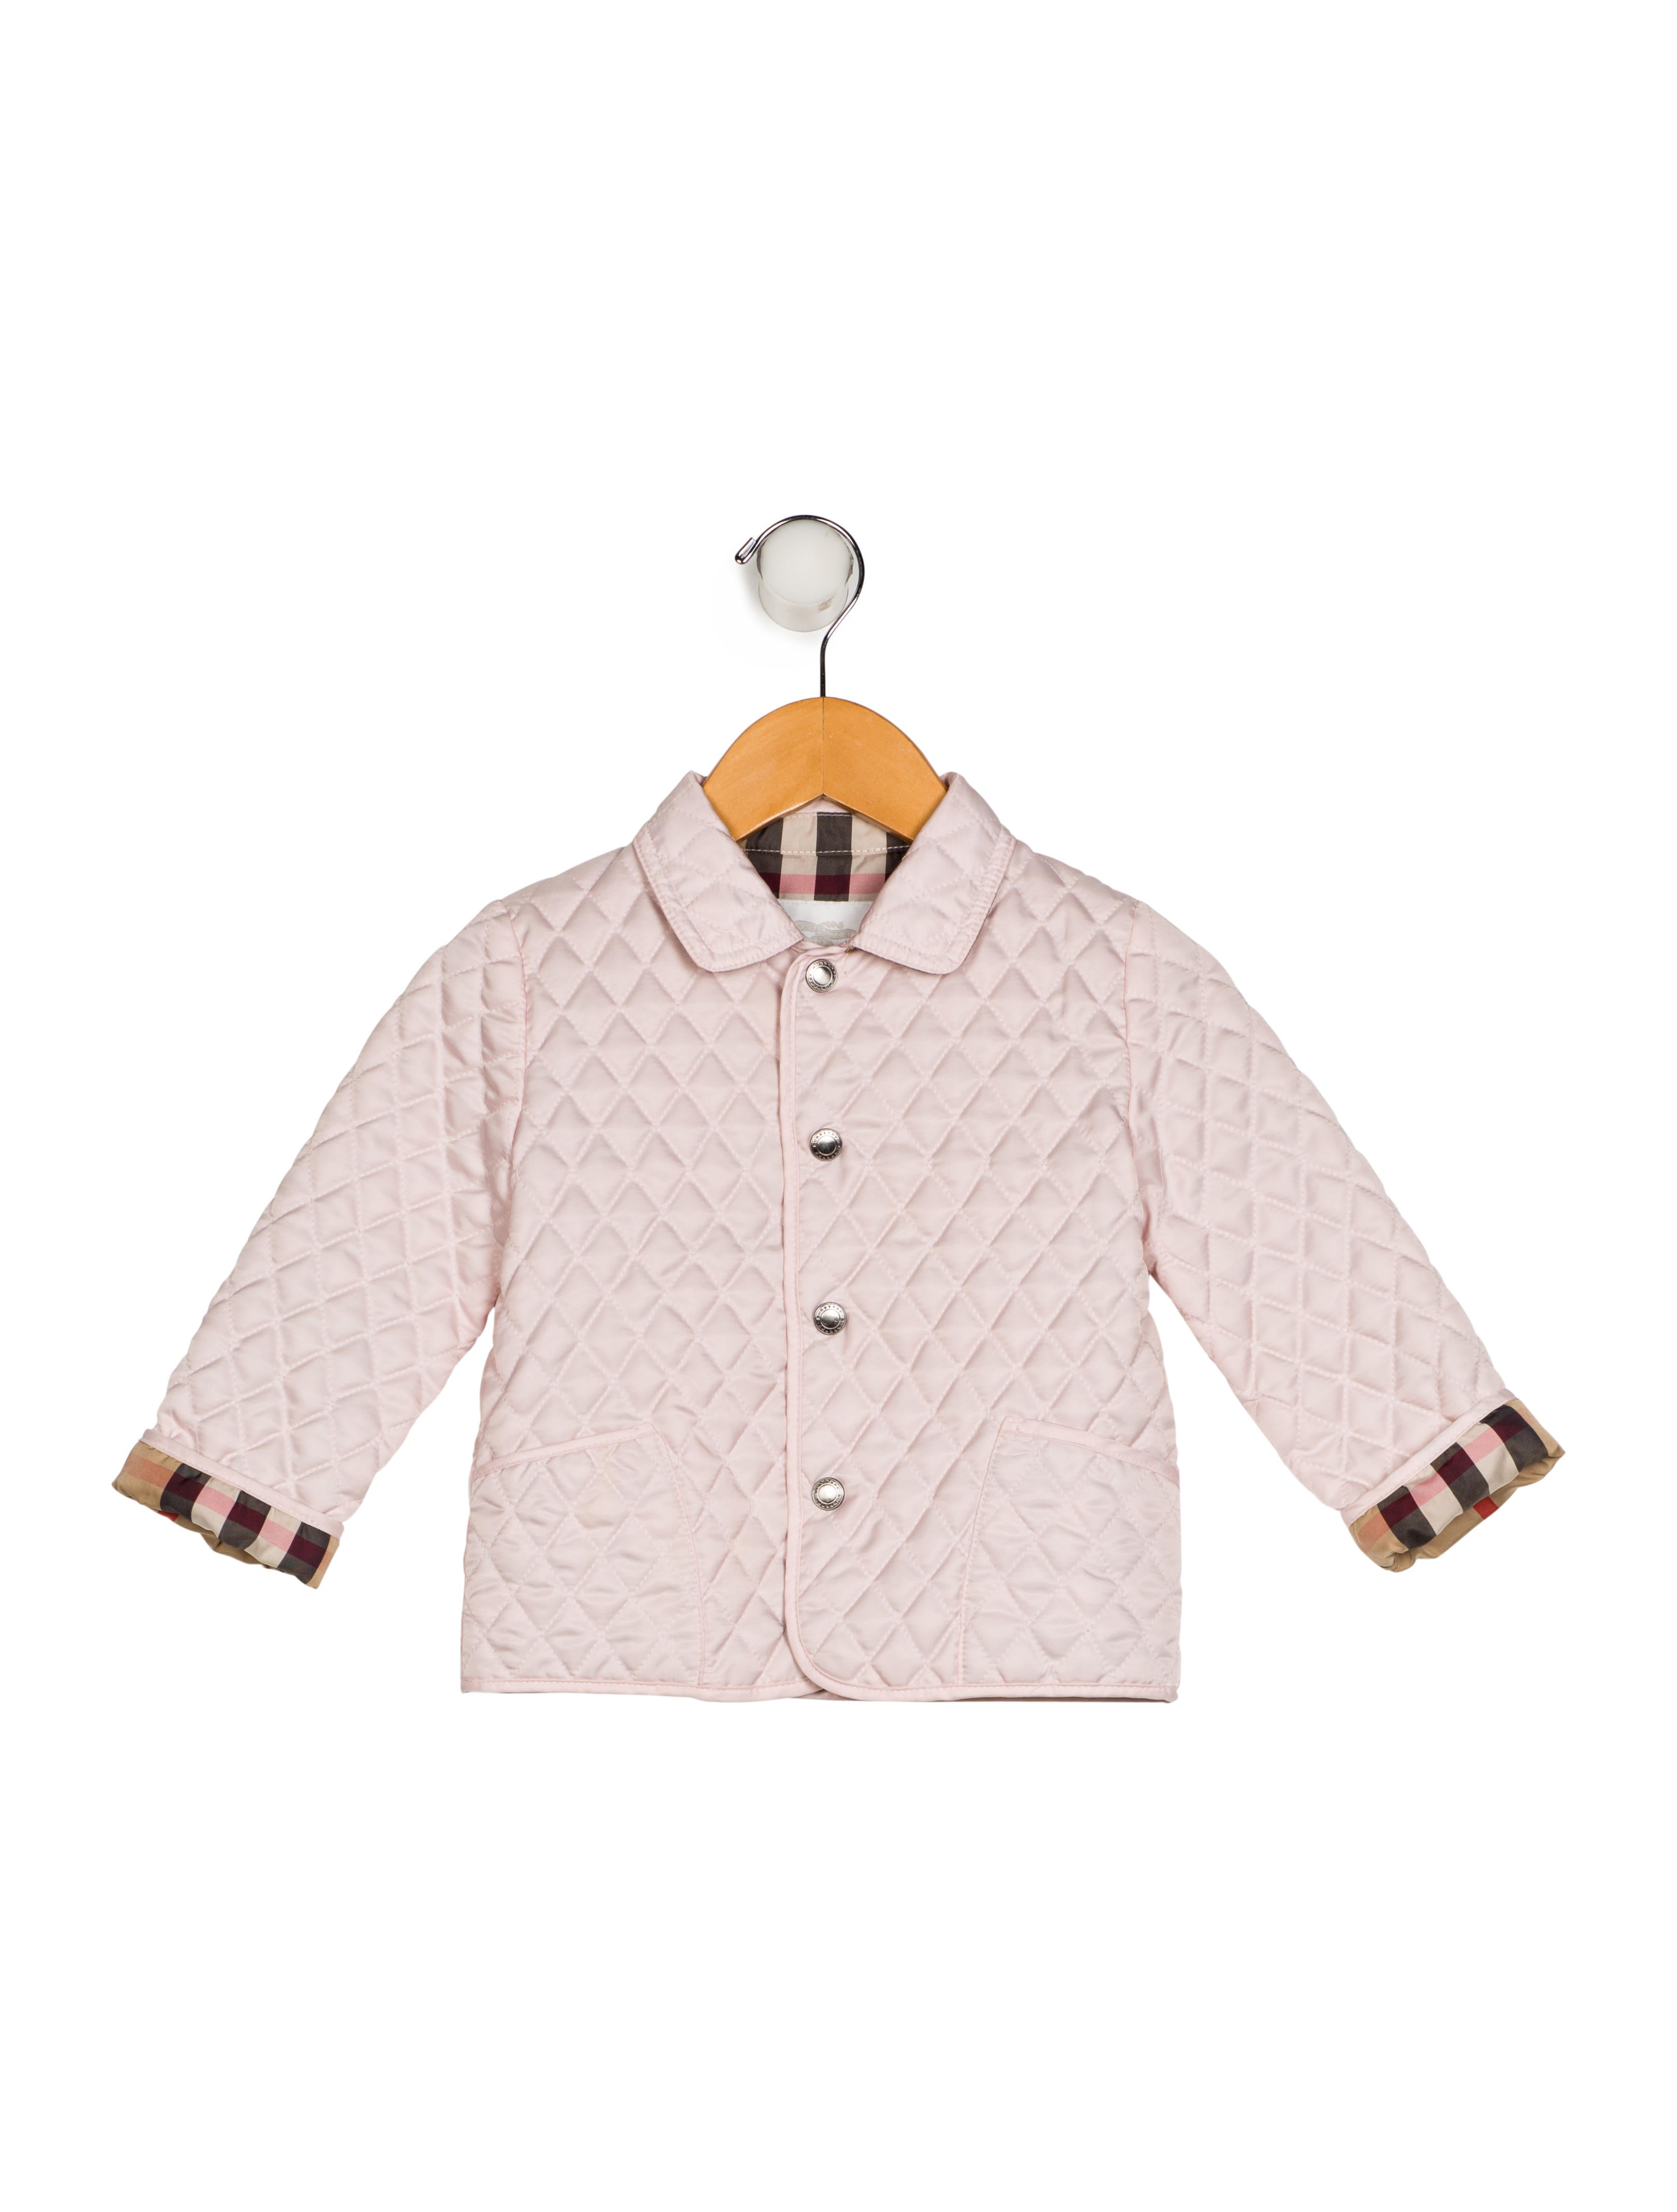 Burberry Girls Collar Quilted Jacket Girls Bur99007 The Realreal